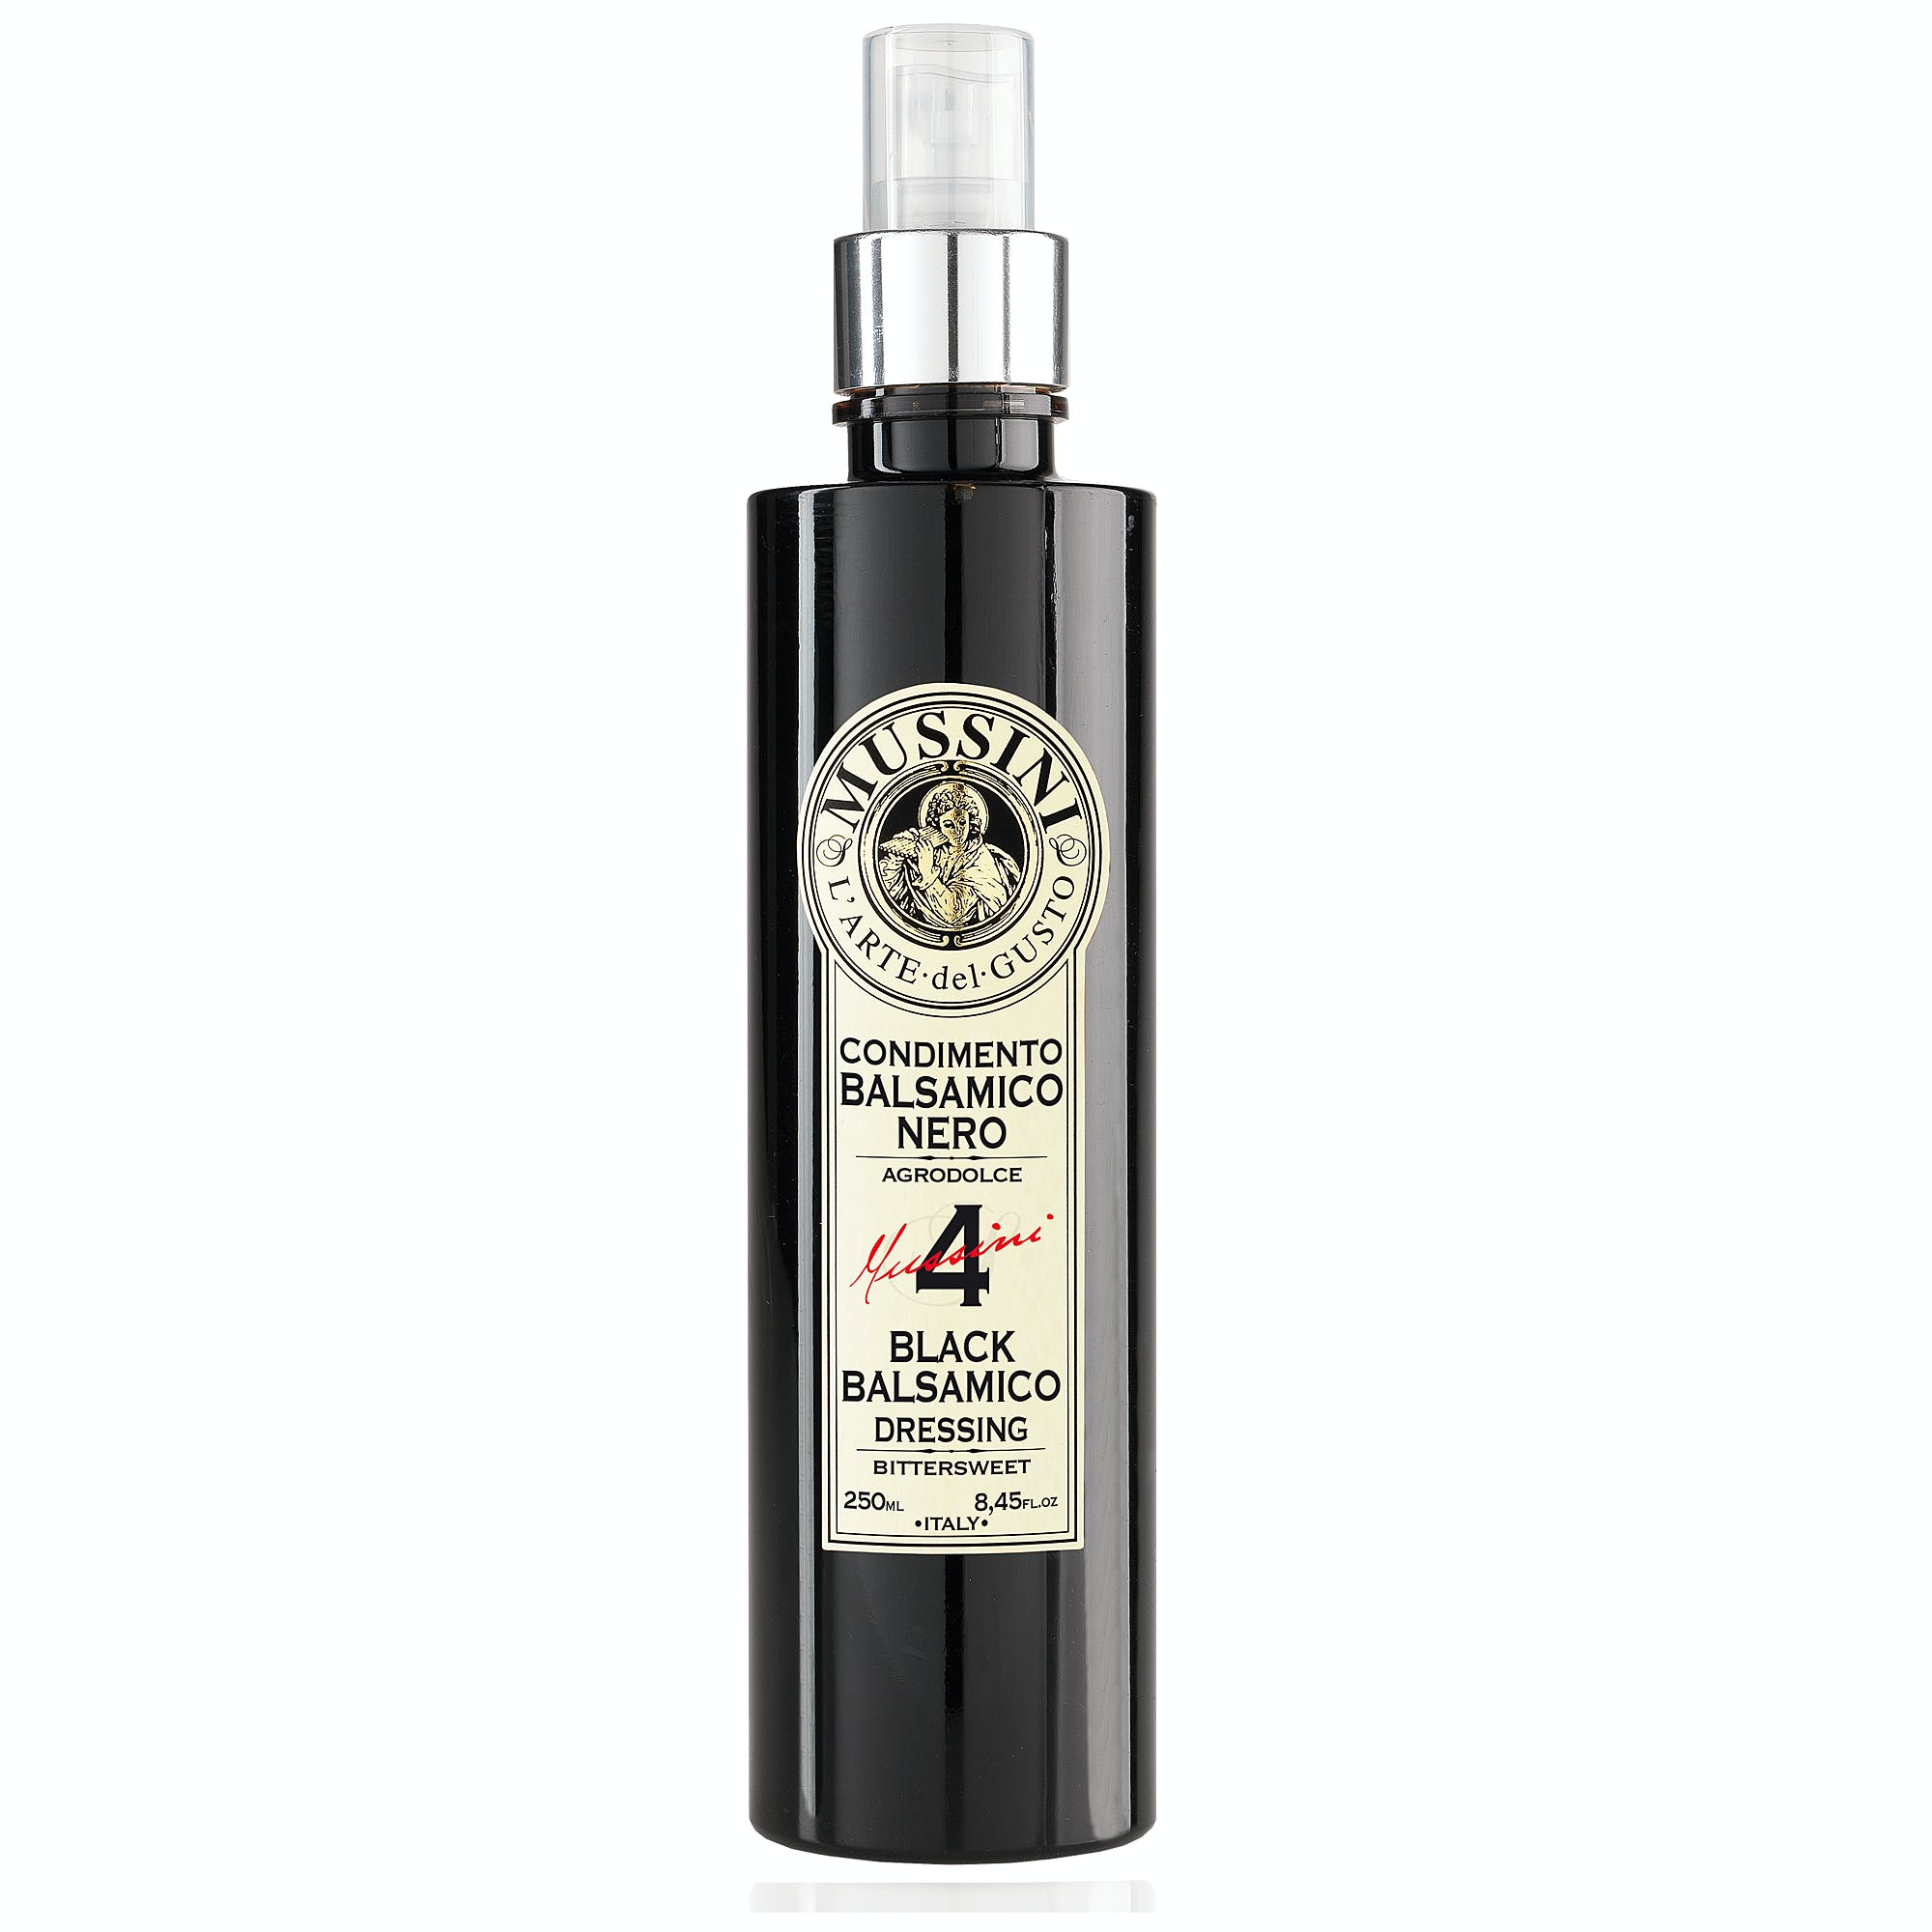 4 Year Dark Balsamic Vinegar Spray Balsamic Vinegar sold by M5 Corporation